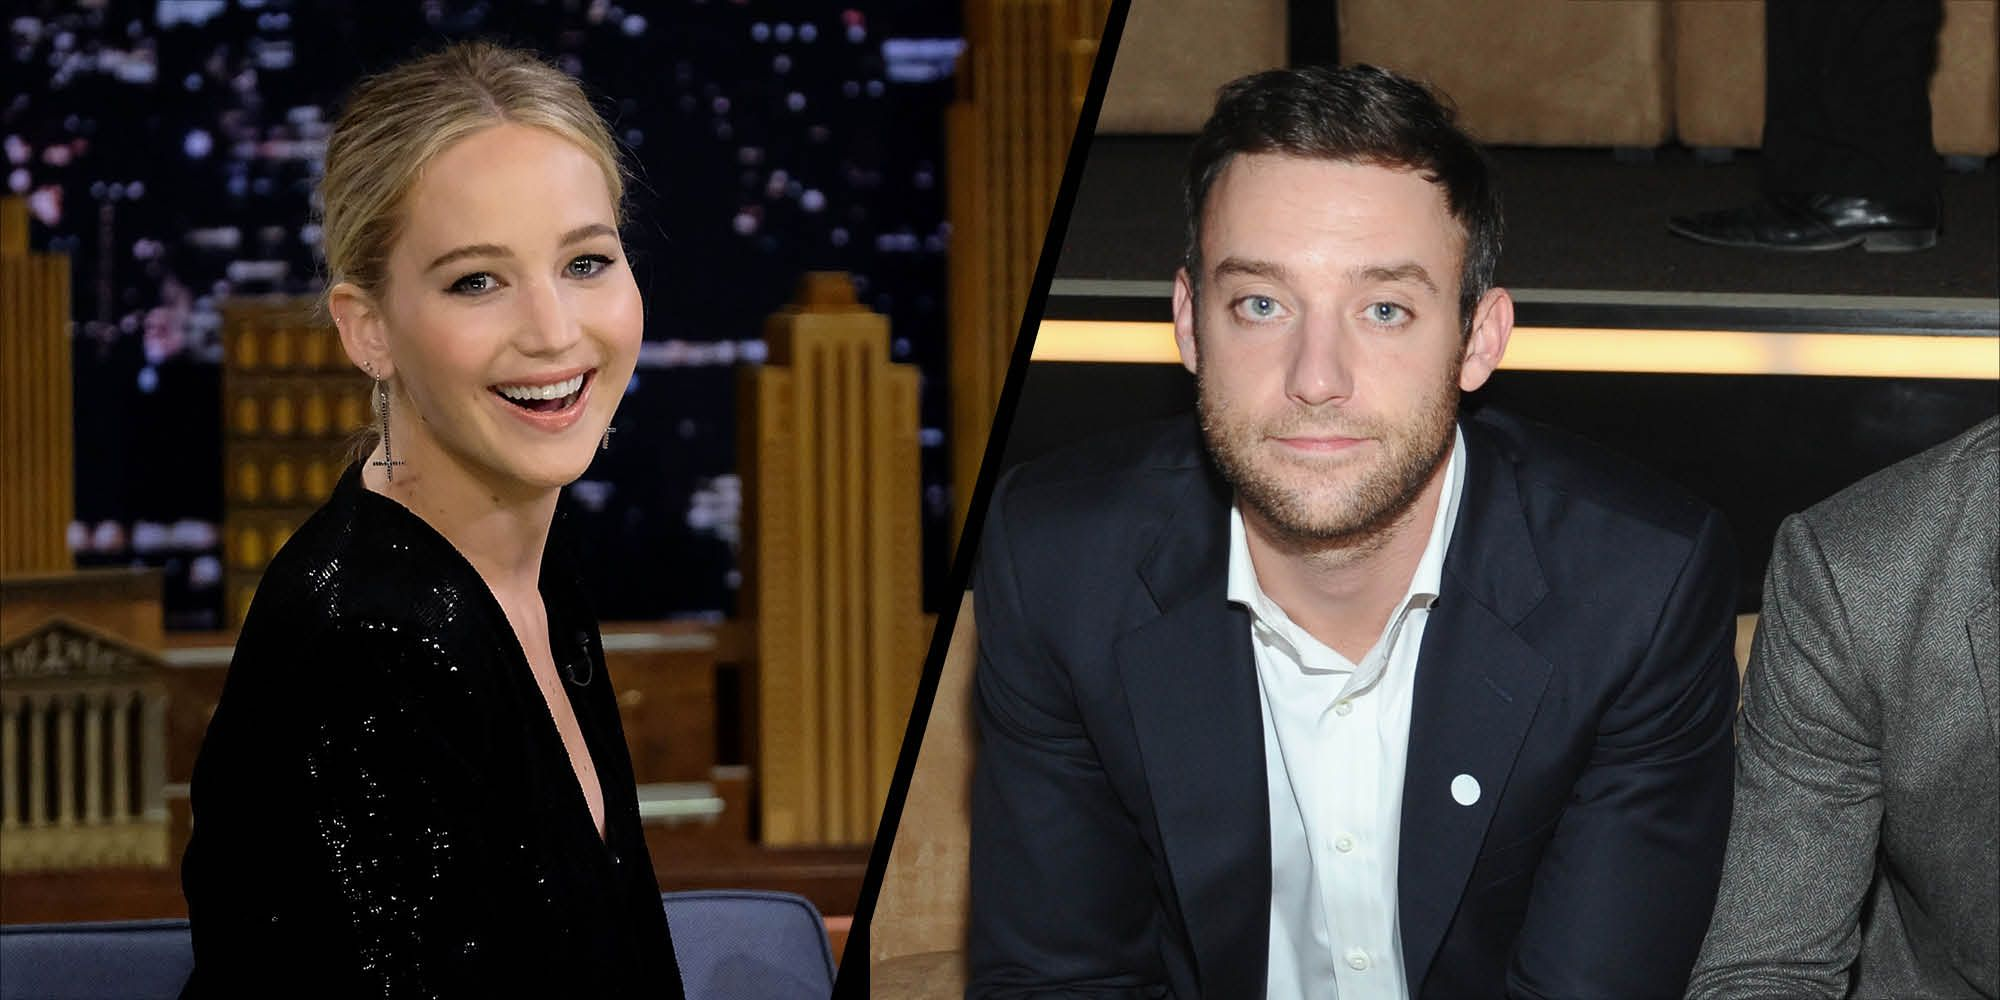 Jennifer Lawrence might have just got married